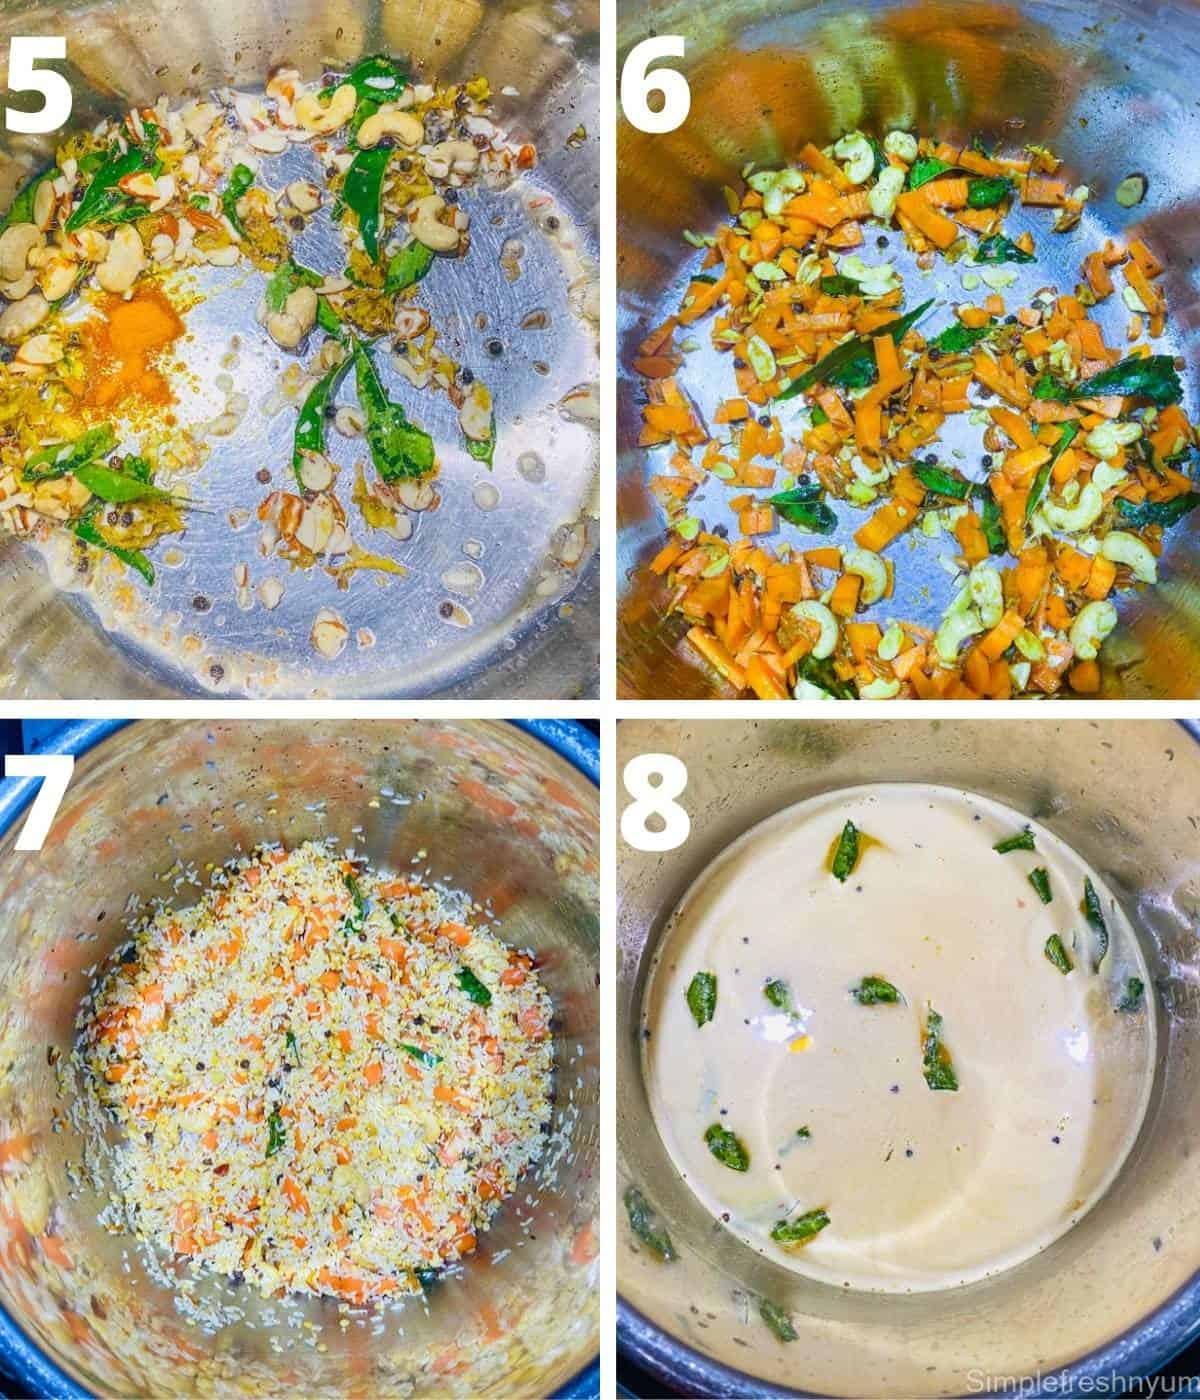 Next four Step by Step pictures for Recipe of Pongal in a collage.